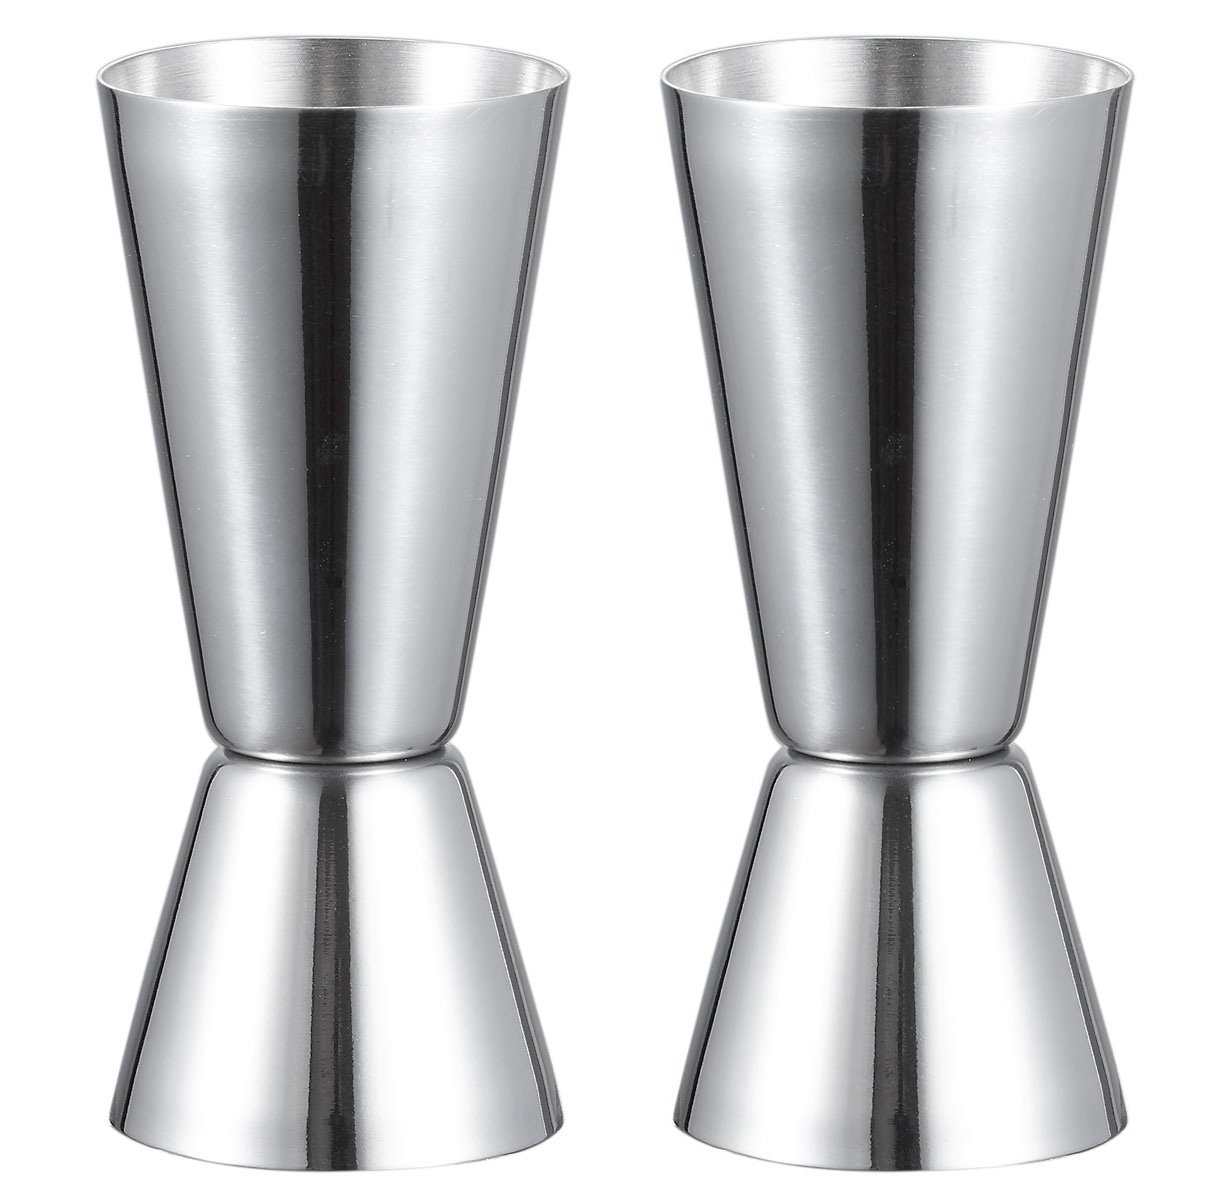 Visol Narrowed Josset Stainless Steel Double Jigger (2 Pack), Silver